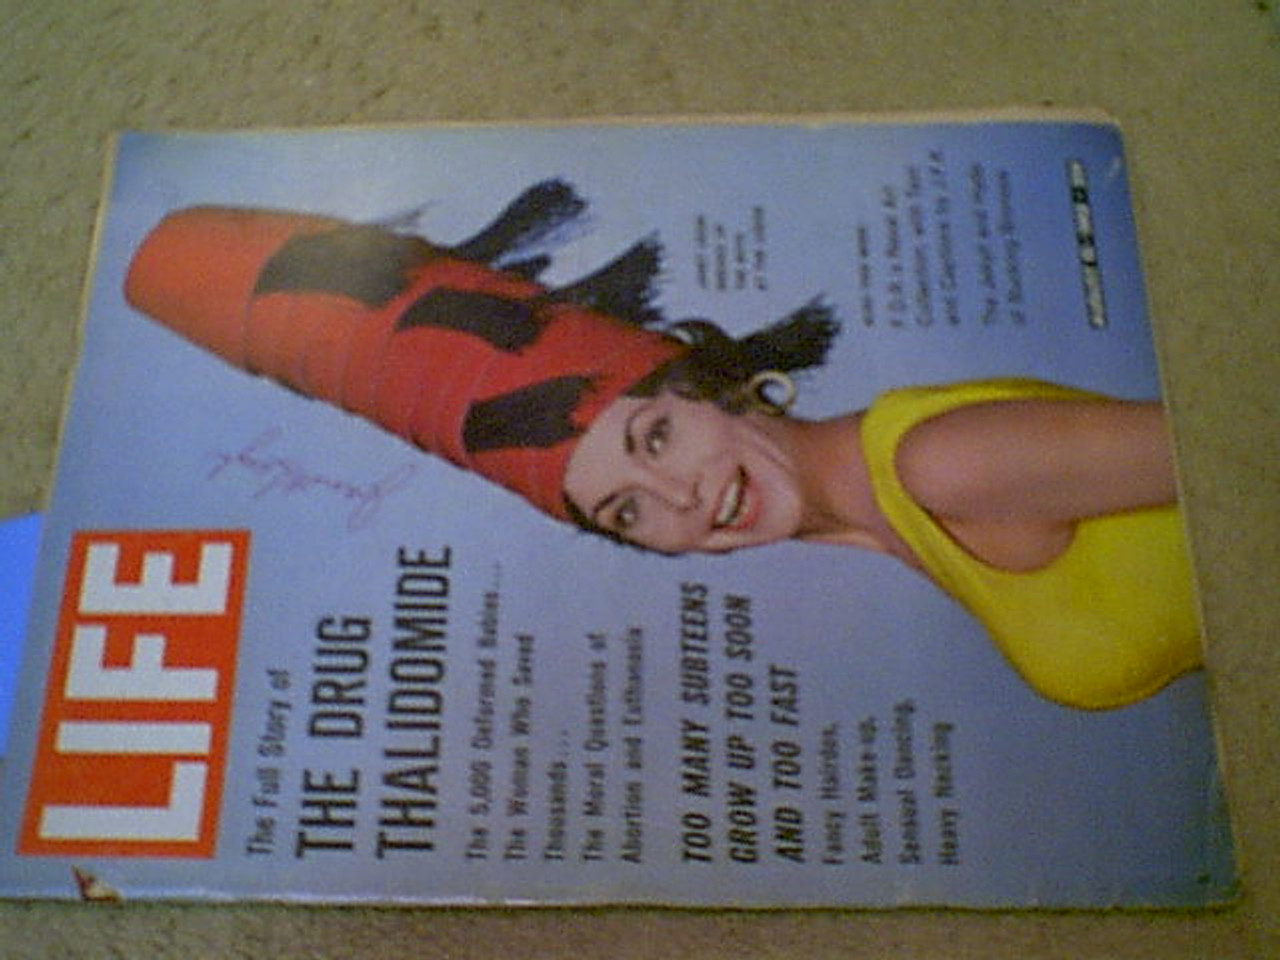 Leigh, Janet Life Magazine 1962 Signed Autograph Cover Color Photo